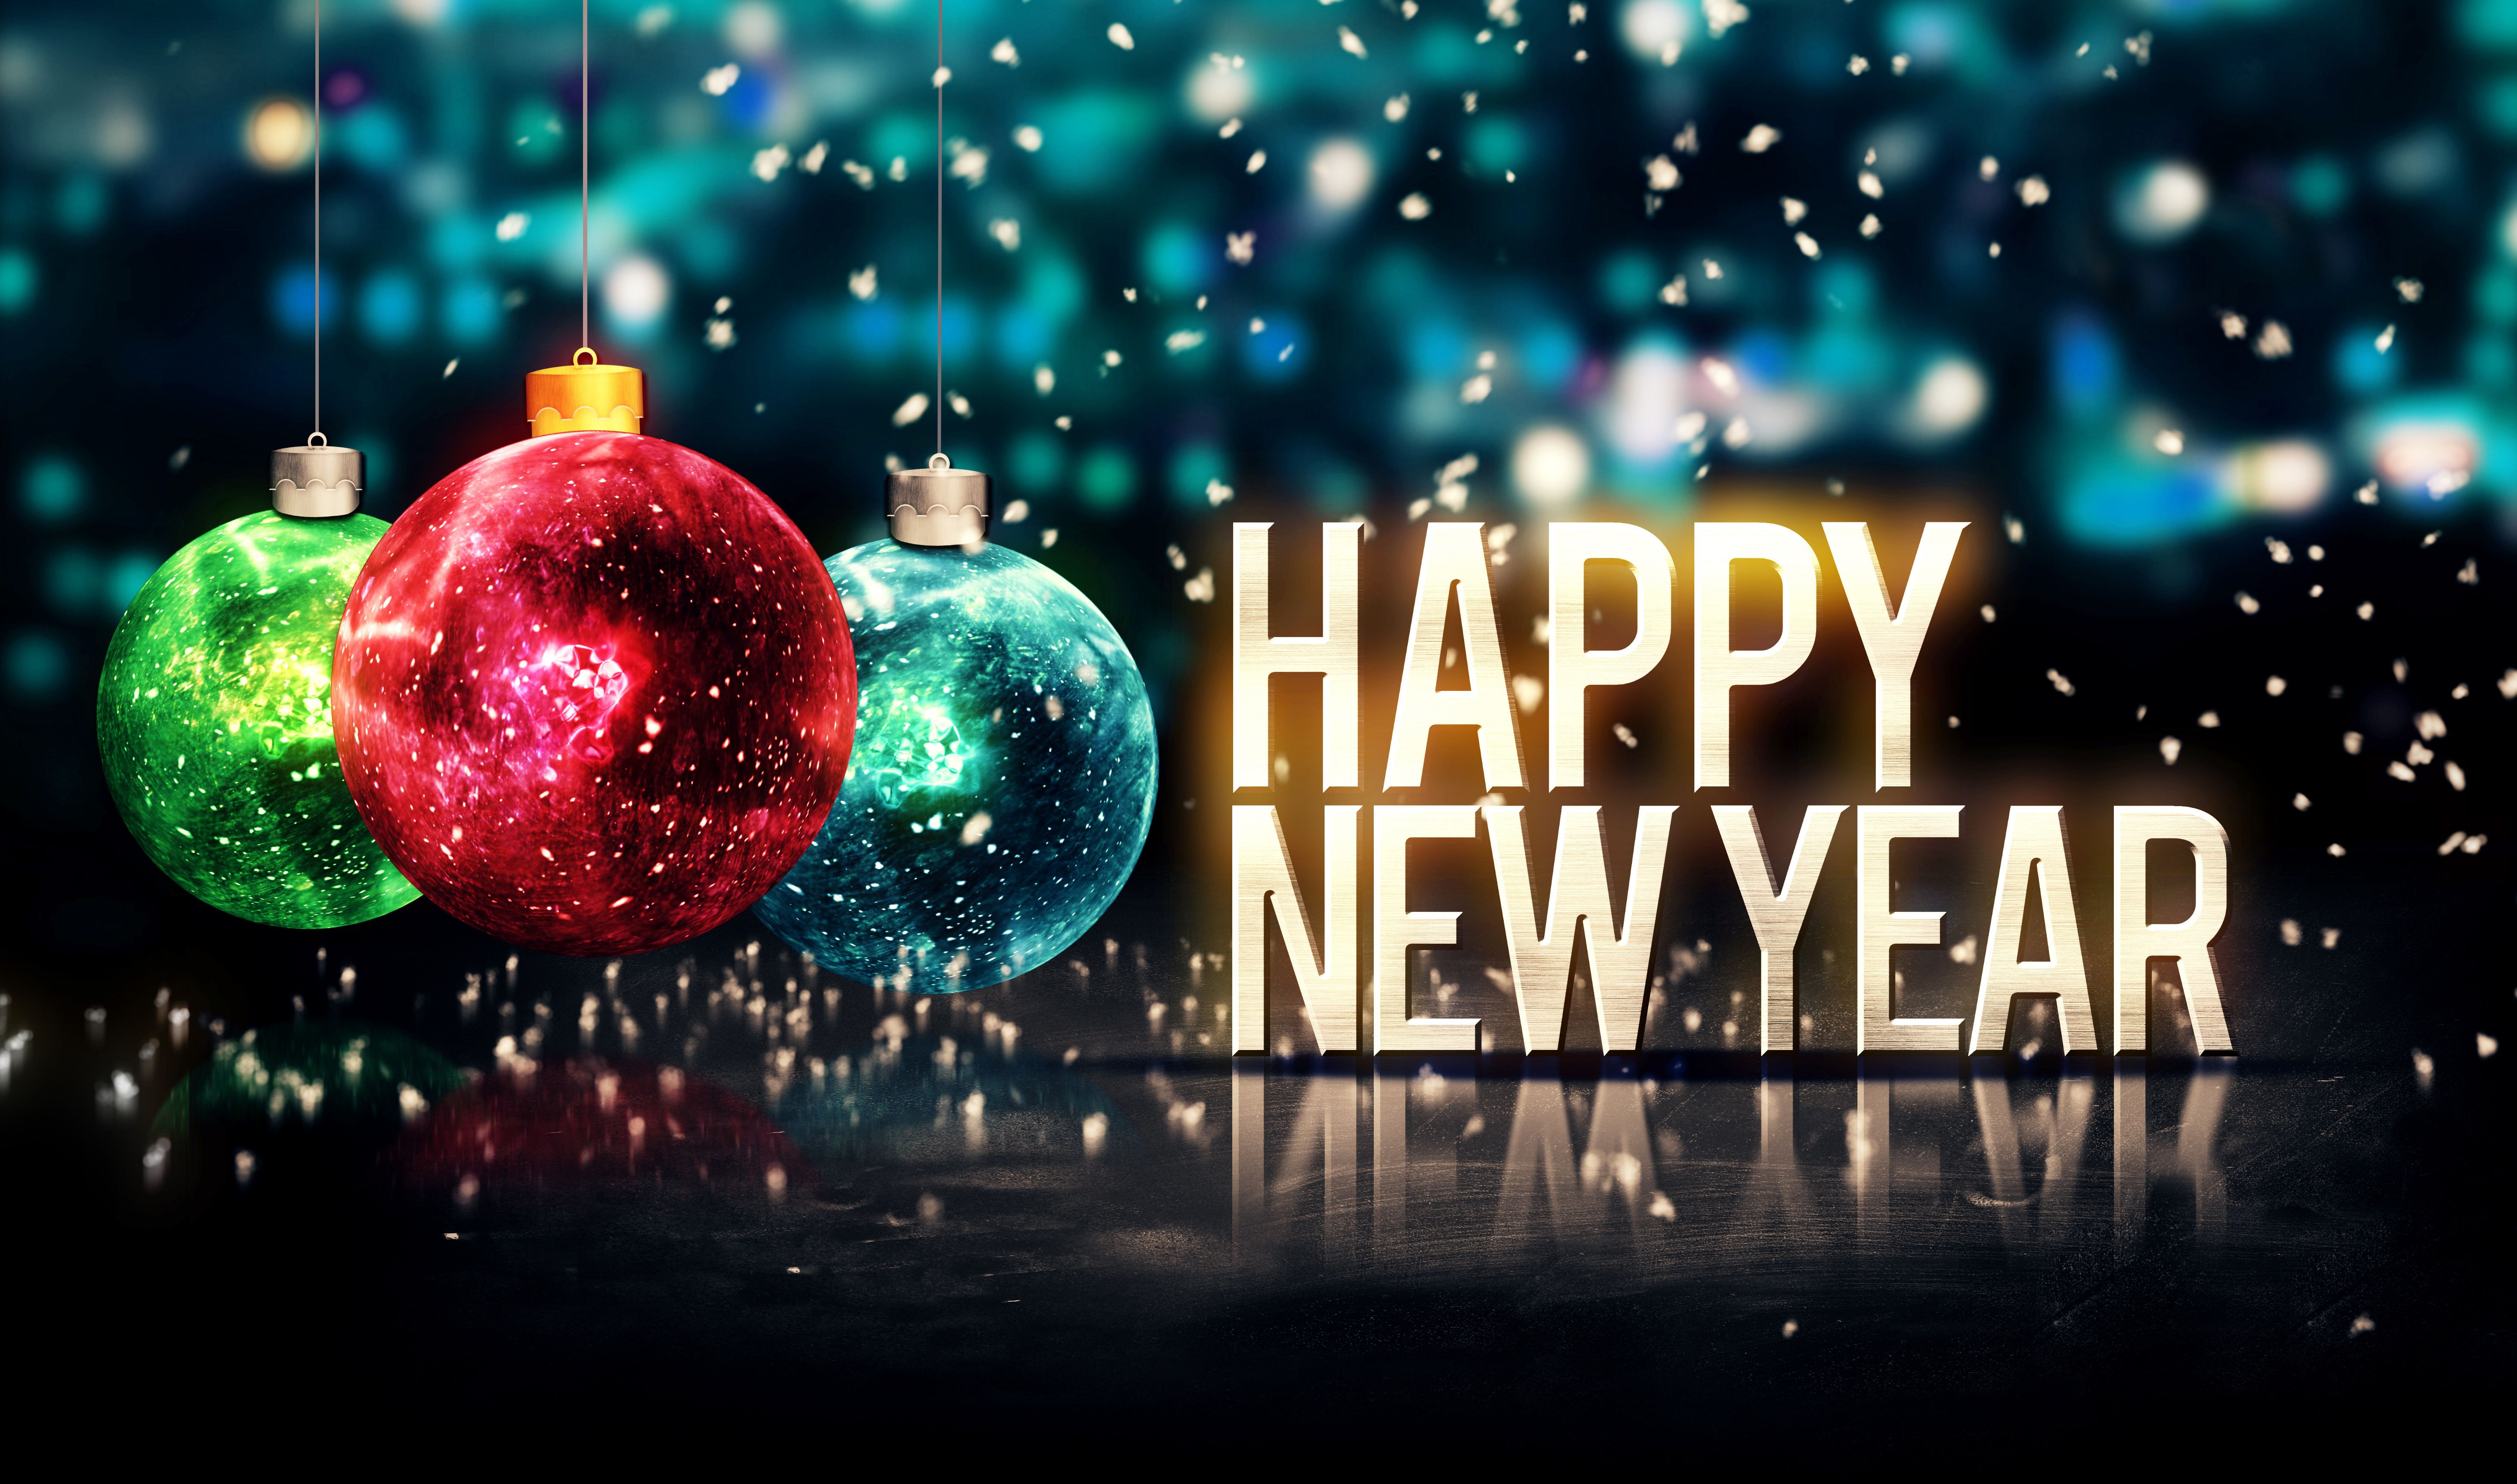 Happy New Year 2015 Balls Glitter Bokeh Decoration Desktop Happy New Year Wishes Happy New Year Wallpaper Happy New Year Images